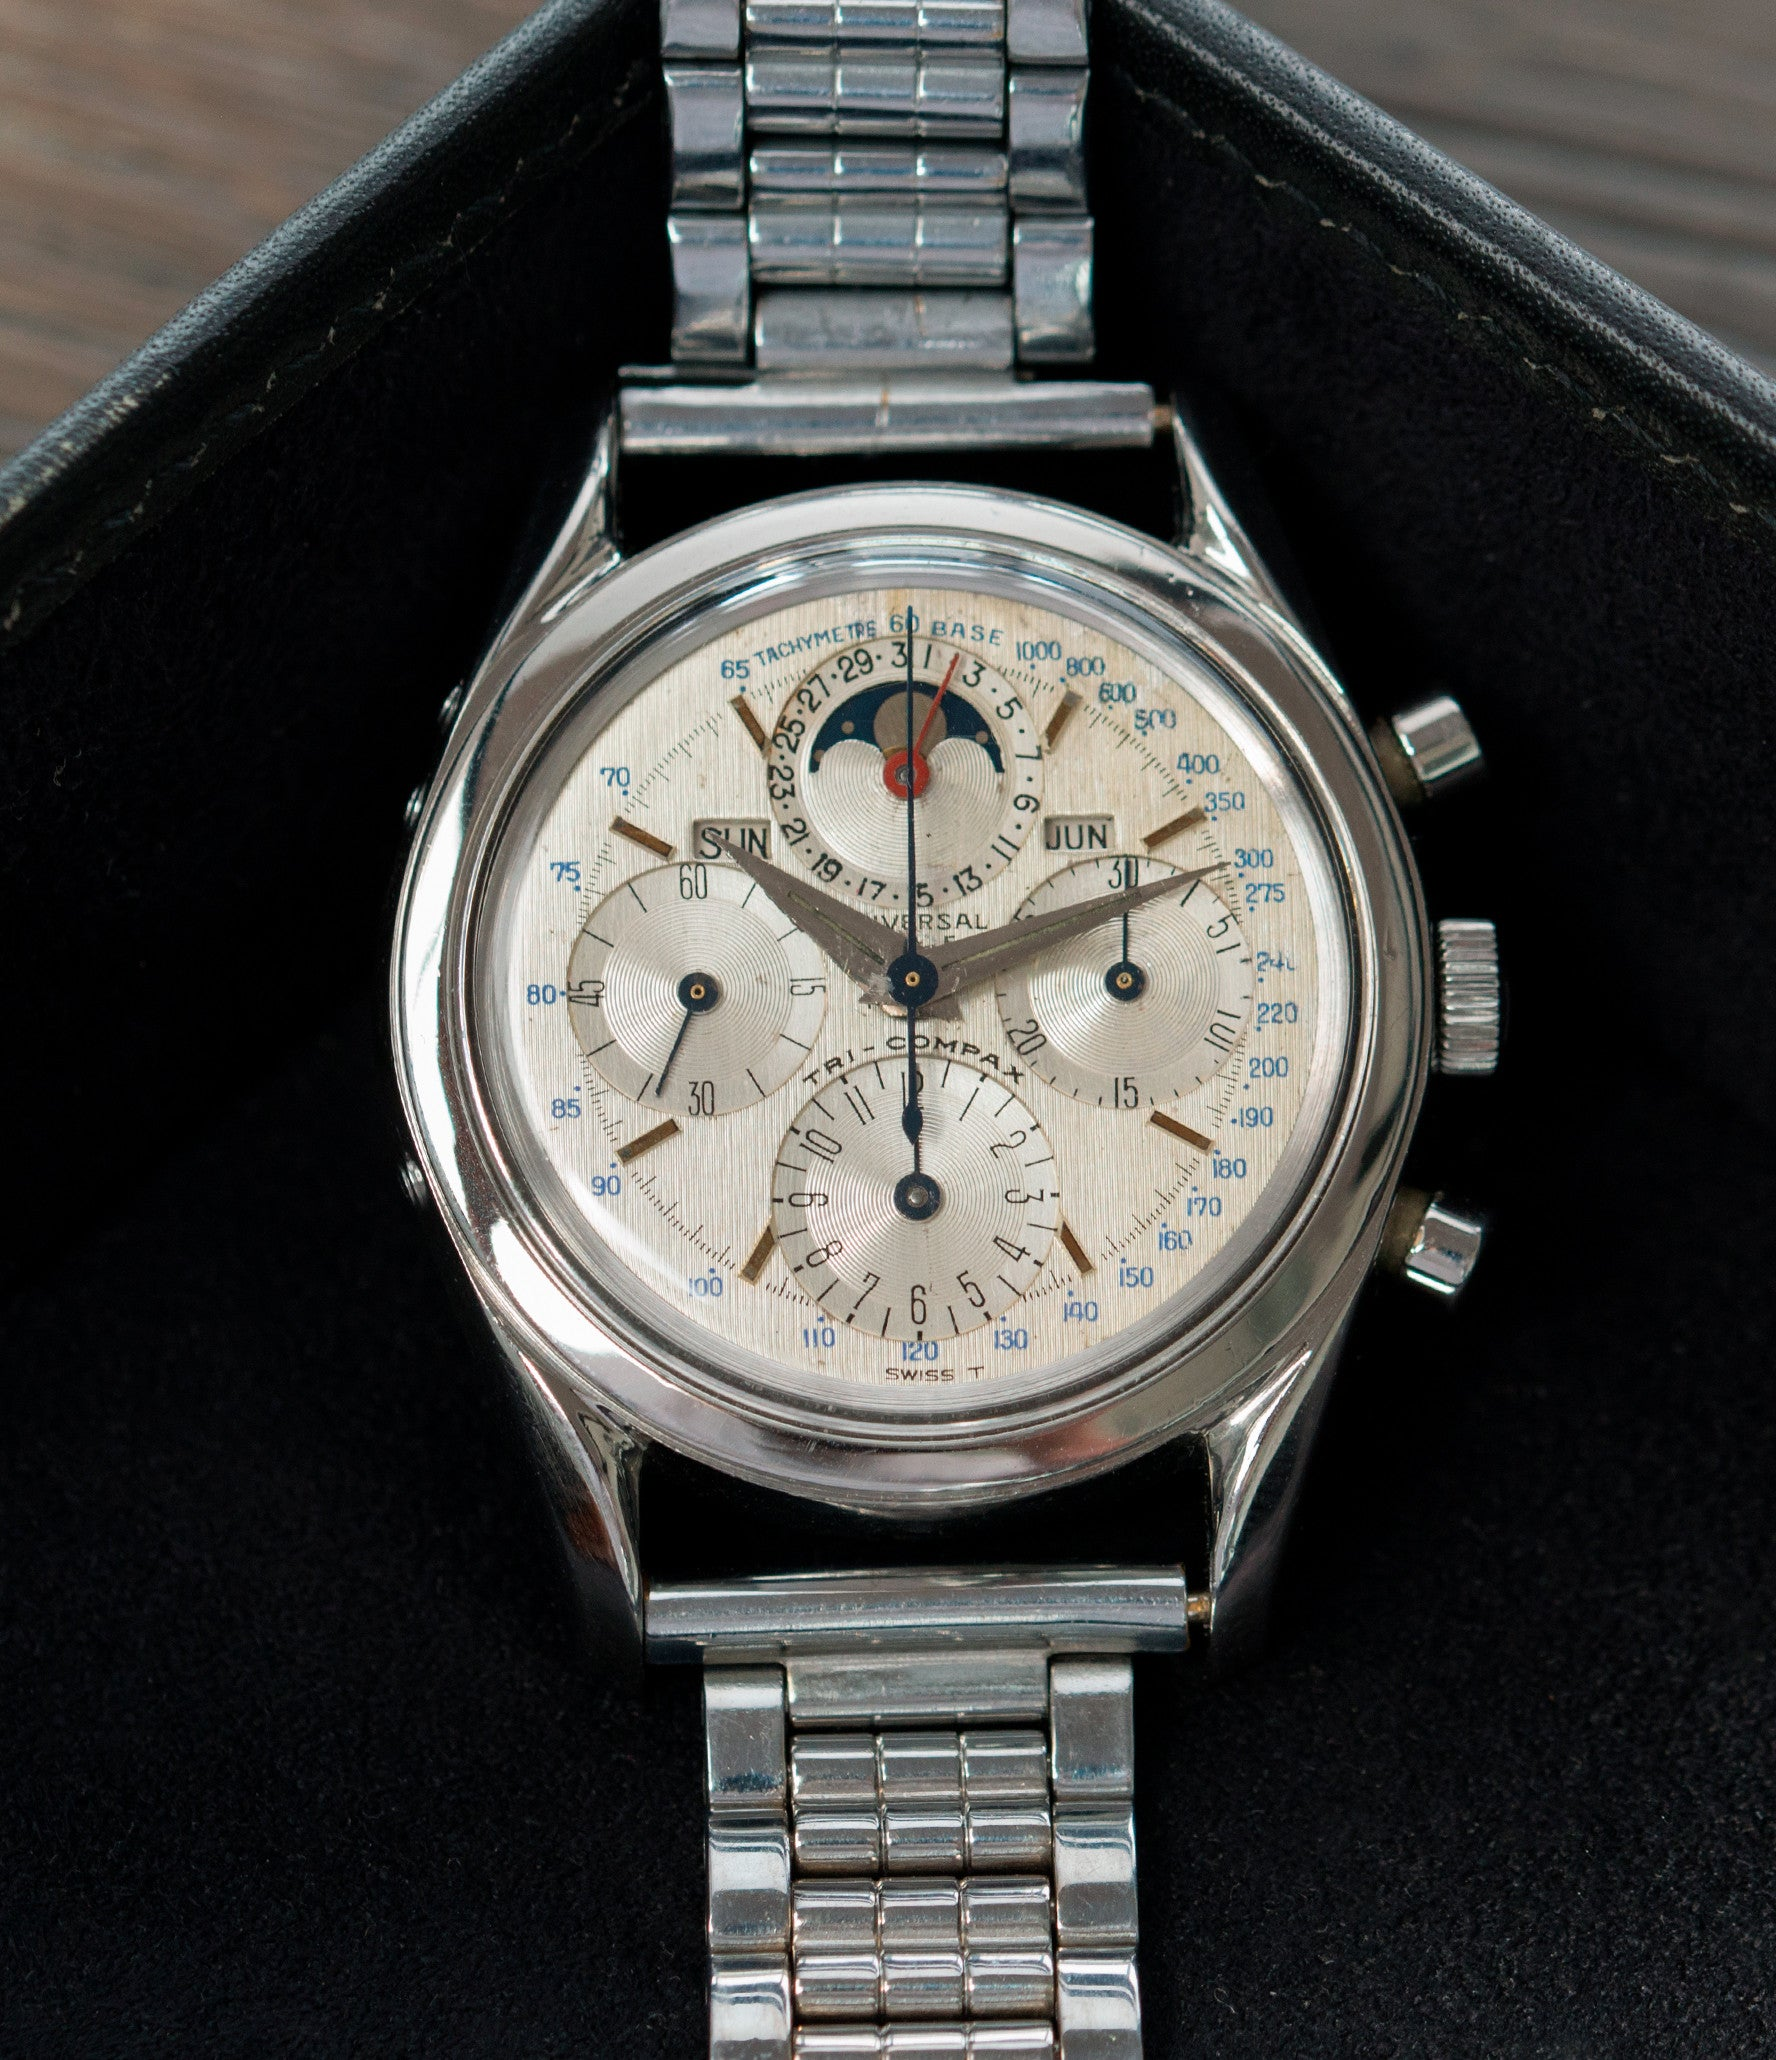 moonphase Universal Geneve 222100/2 Tri-Compax Triple Calendar Moonphase steel chronograph watch for sale online at A Collected Man London rare vintage watch specialist